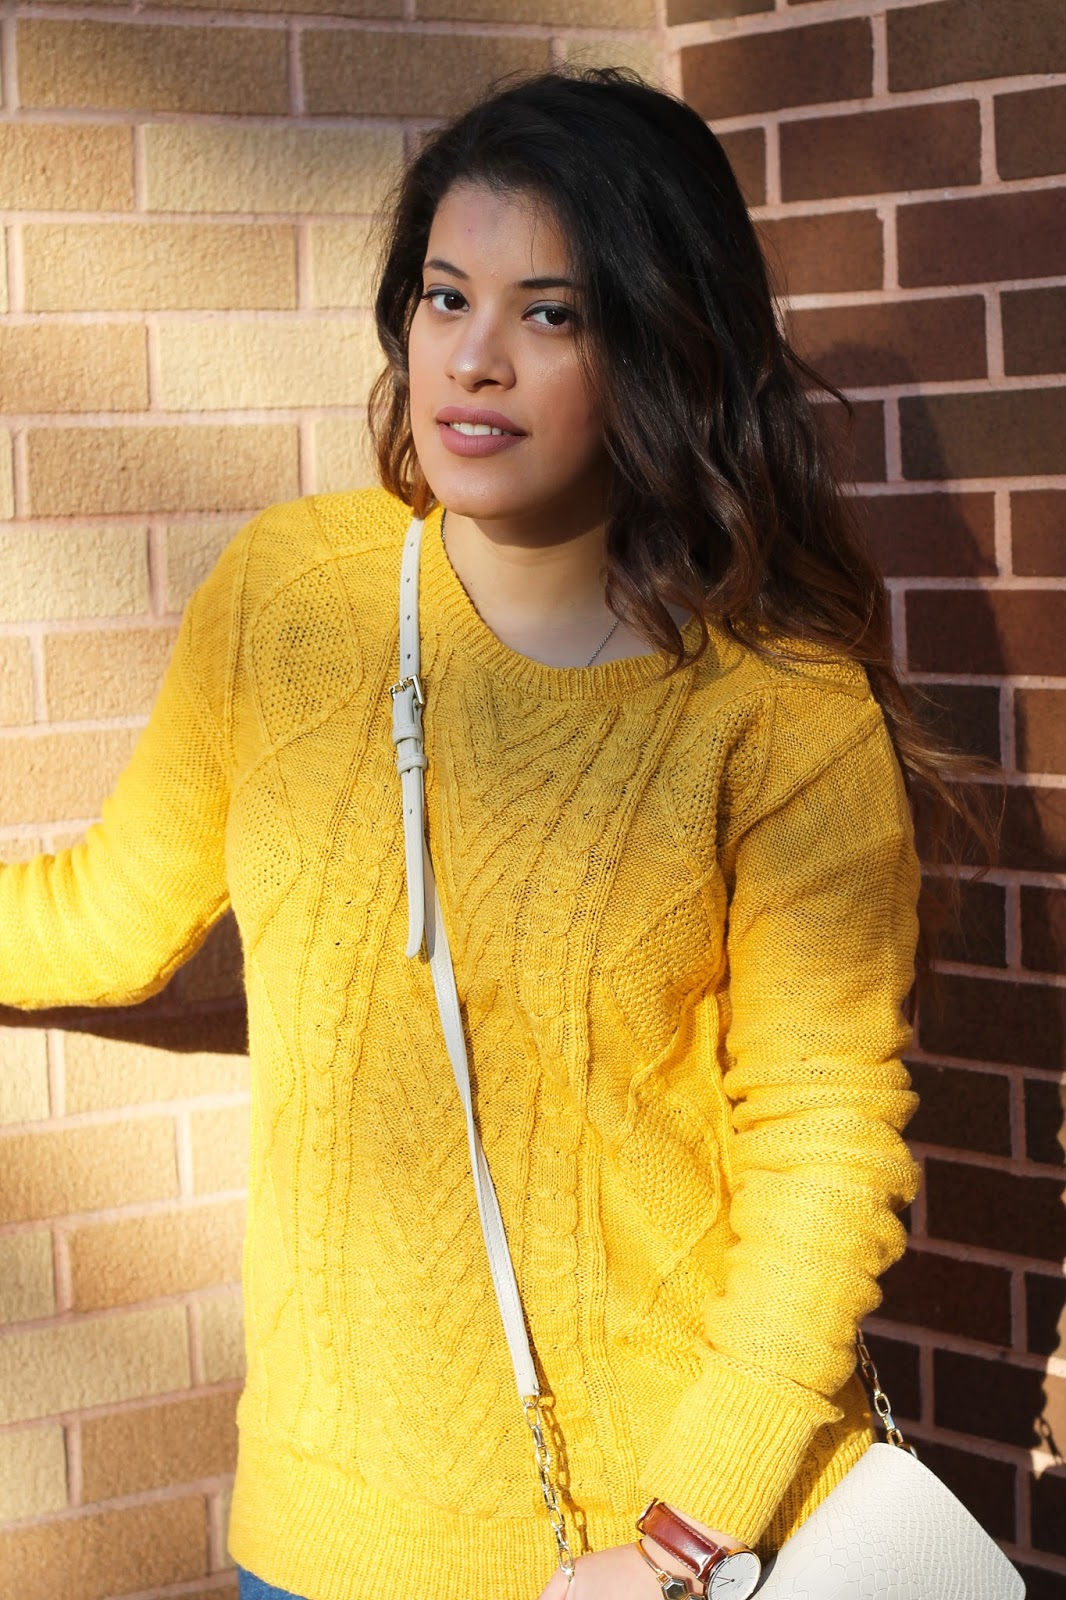 jcrew, target, target style, over the knee boots, fall, fall style, gigi new york, daniel wellington watch, lulus, love lulus, mustard yellow, pullover sweater, daniel wellington, skinny jeans, new york, fashion blogger, style blogger, hair,